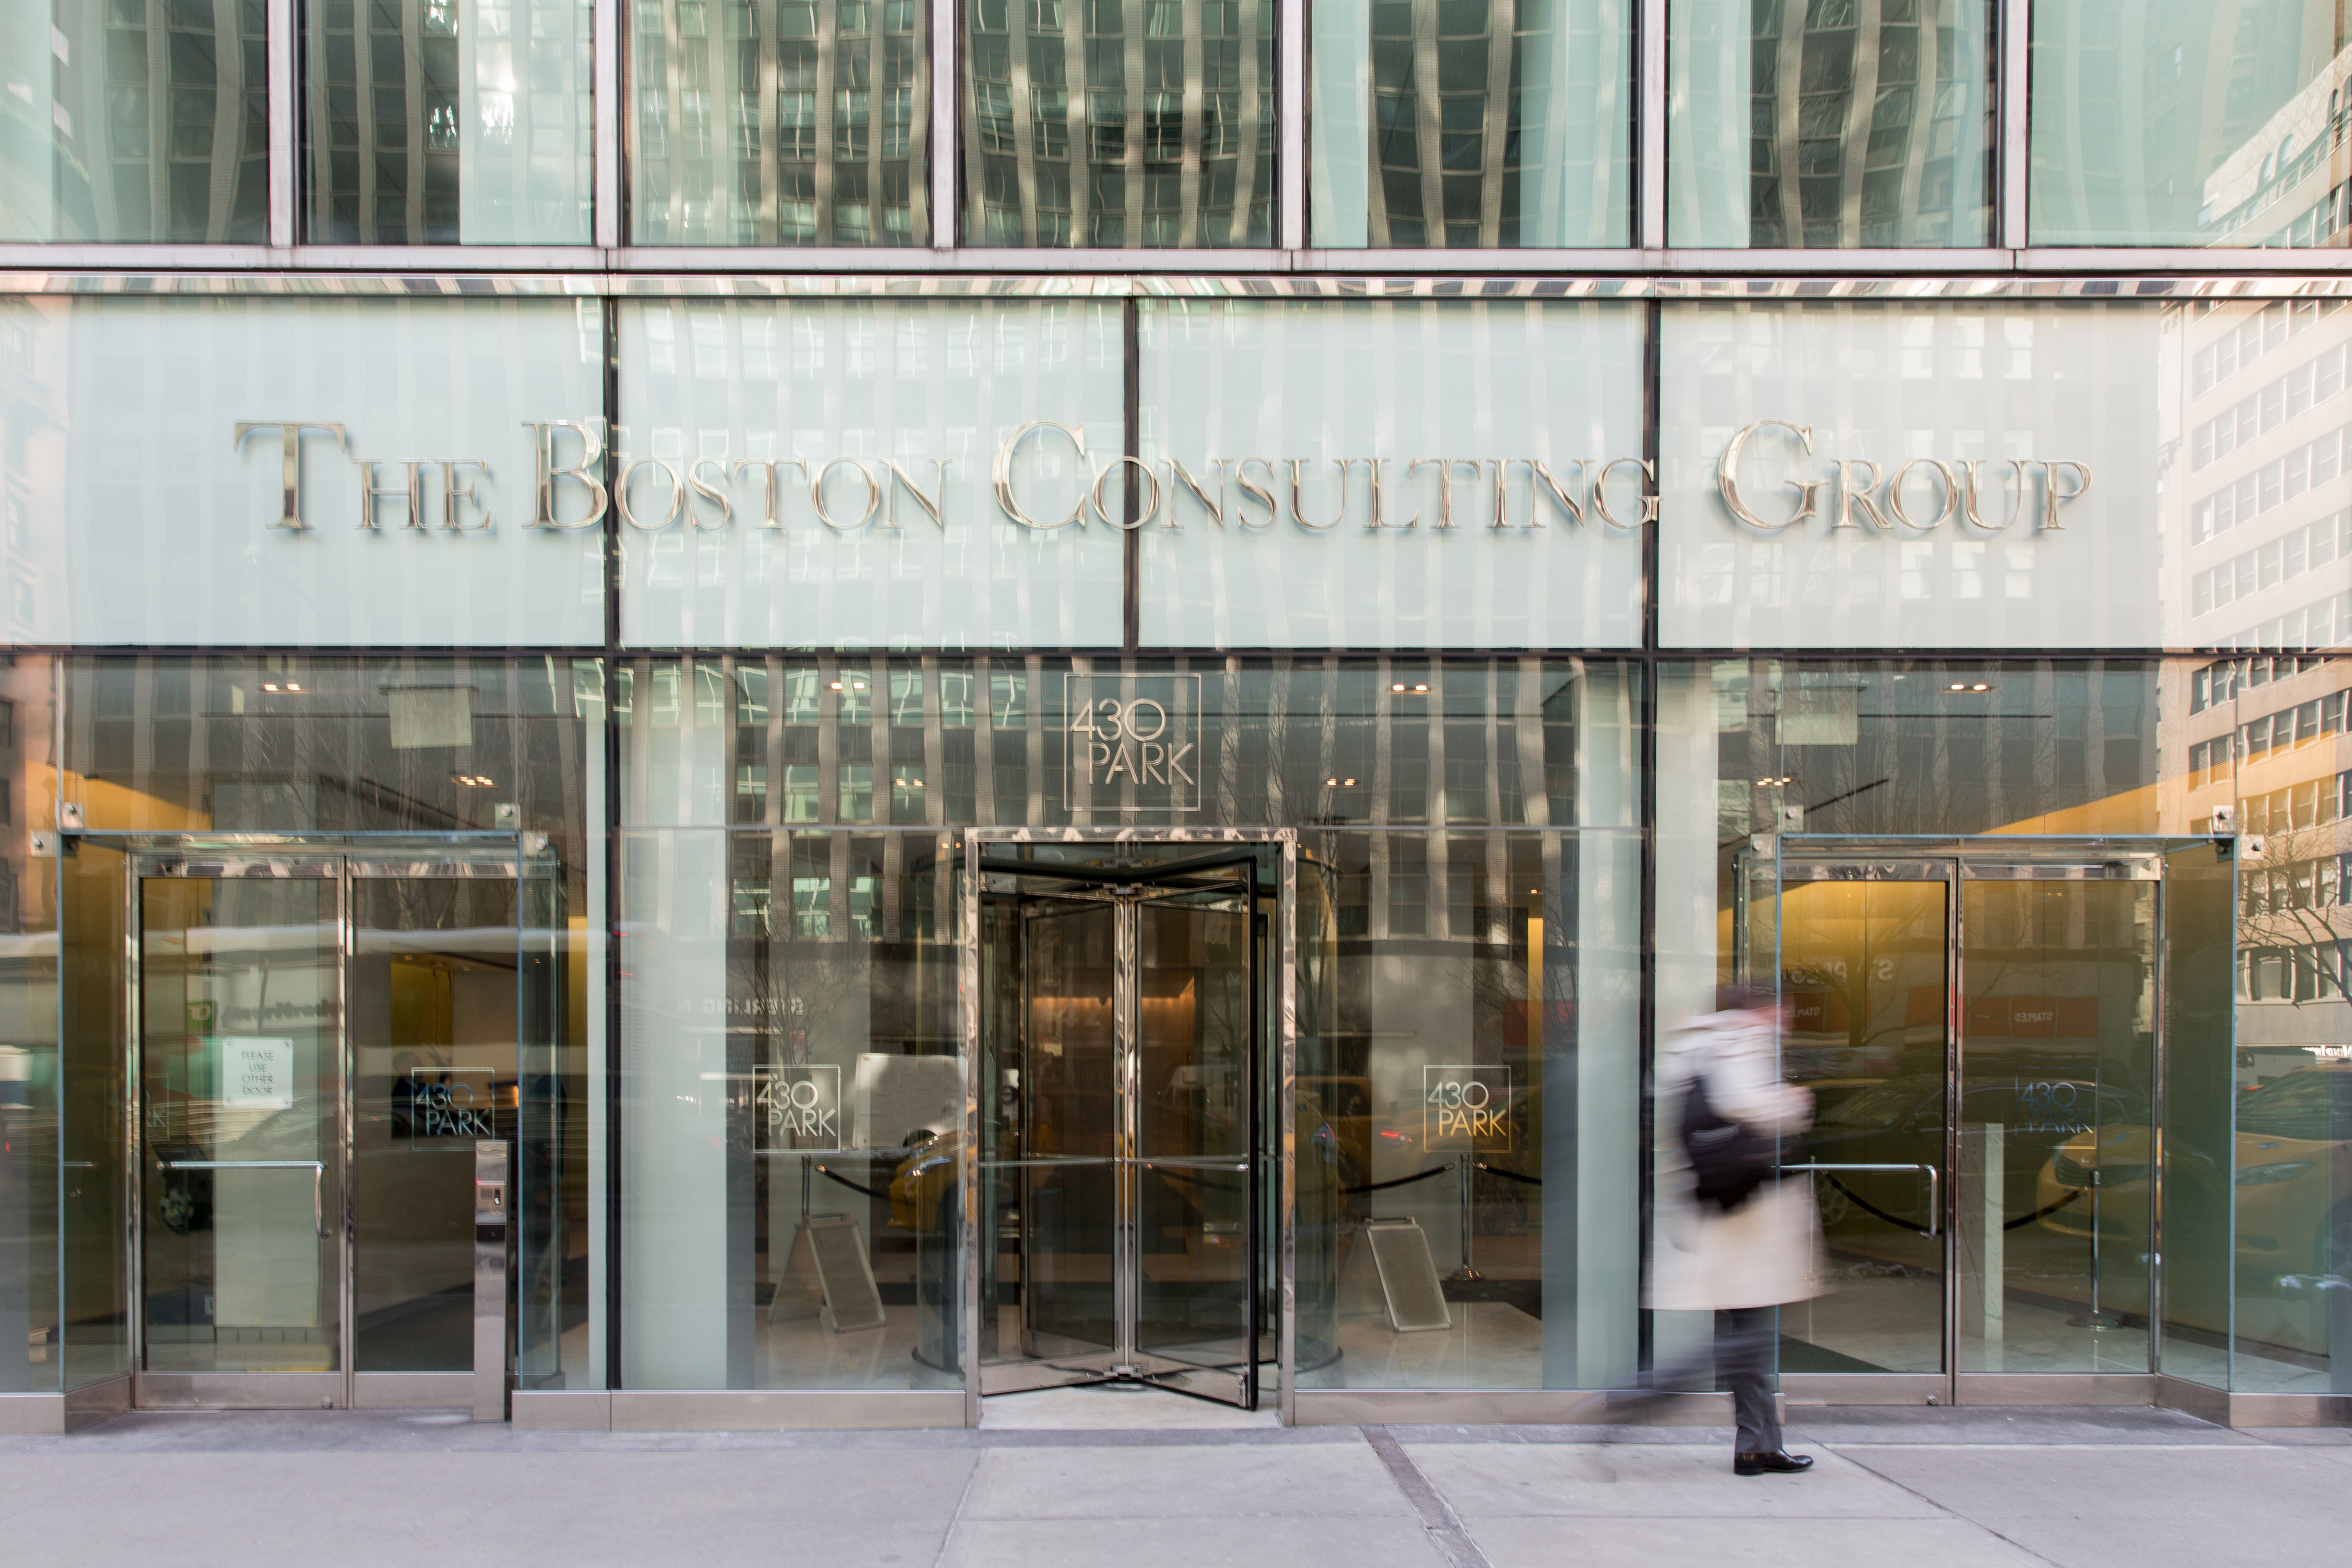 Boston consulting group chicago